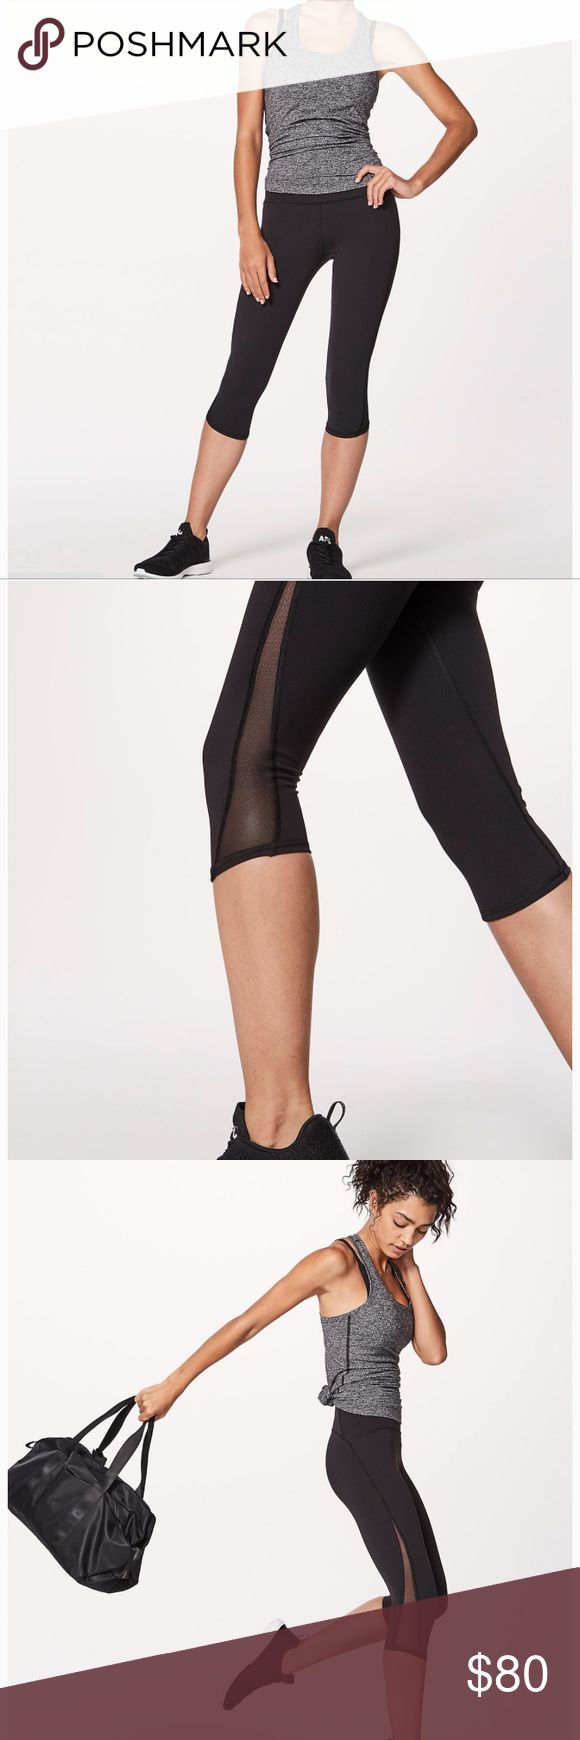 """NWT Lululemon Train Times 17"""" Crop Brand spankin new. Just ordered online and realized I ordered the wrong size for a gift.  Tags still on, never tried on. Just want back what I paid for them! (Price firm, taking a hit on what I paid for posh fees. )  Have original photos by request lululemon athletica Pants Ankle & Cropped"""